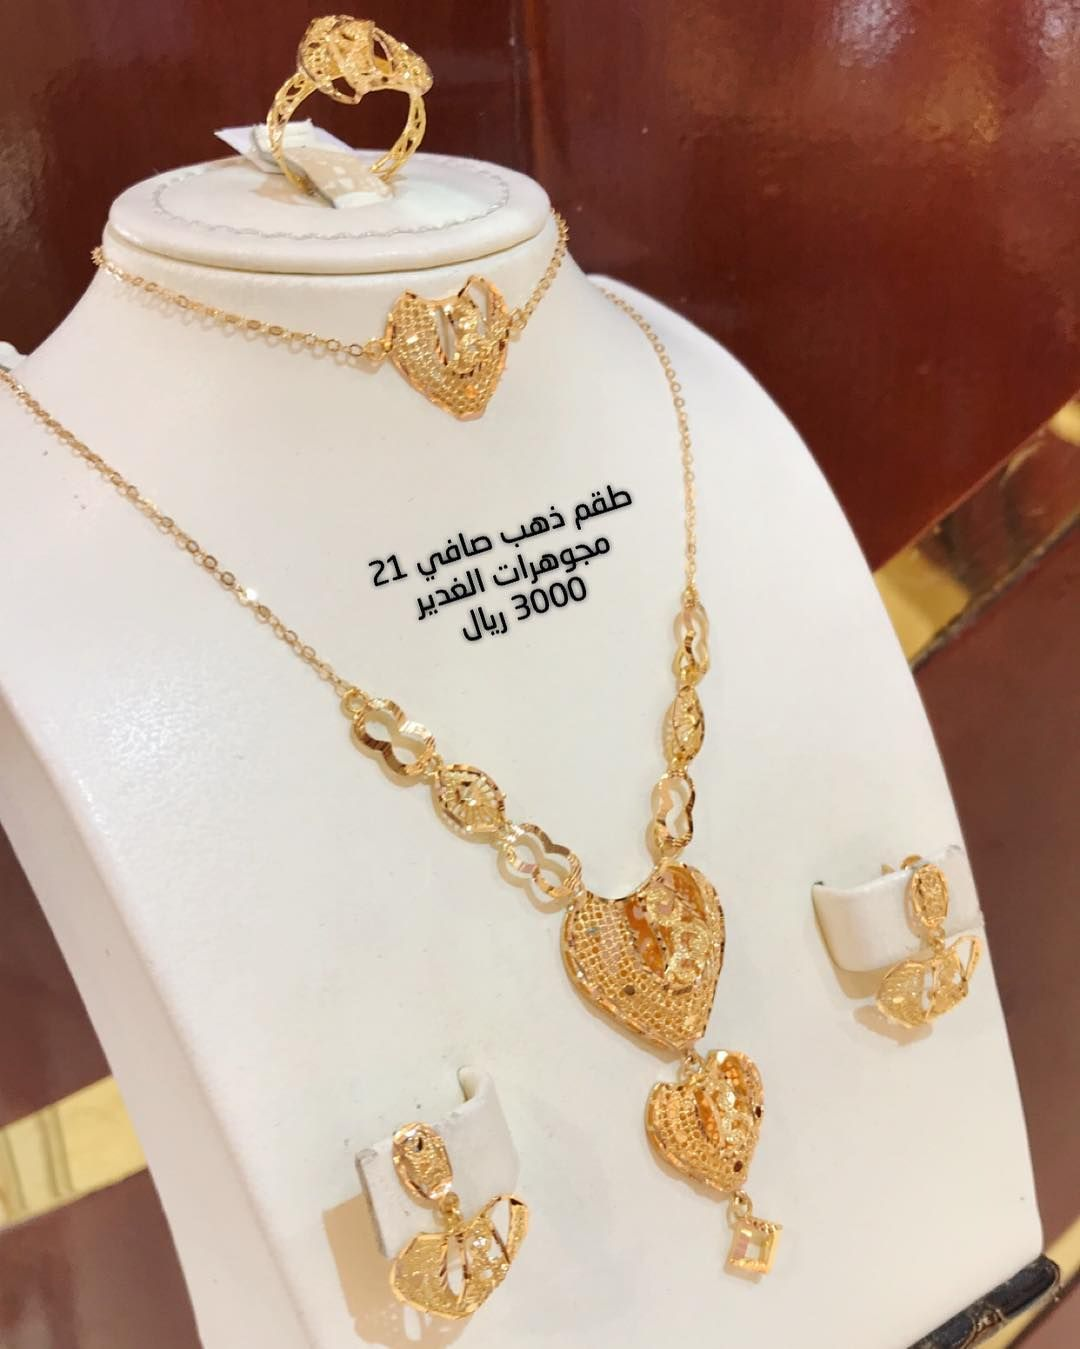 New The 10 Best Home Decor With Pictures طقم ذهب صافي عيار 21 واتسـ 0533323833 للإستفسارعن جميع التفاصيل والطلبات د Gold Necklace Gold Accessories